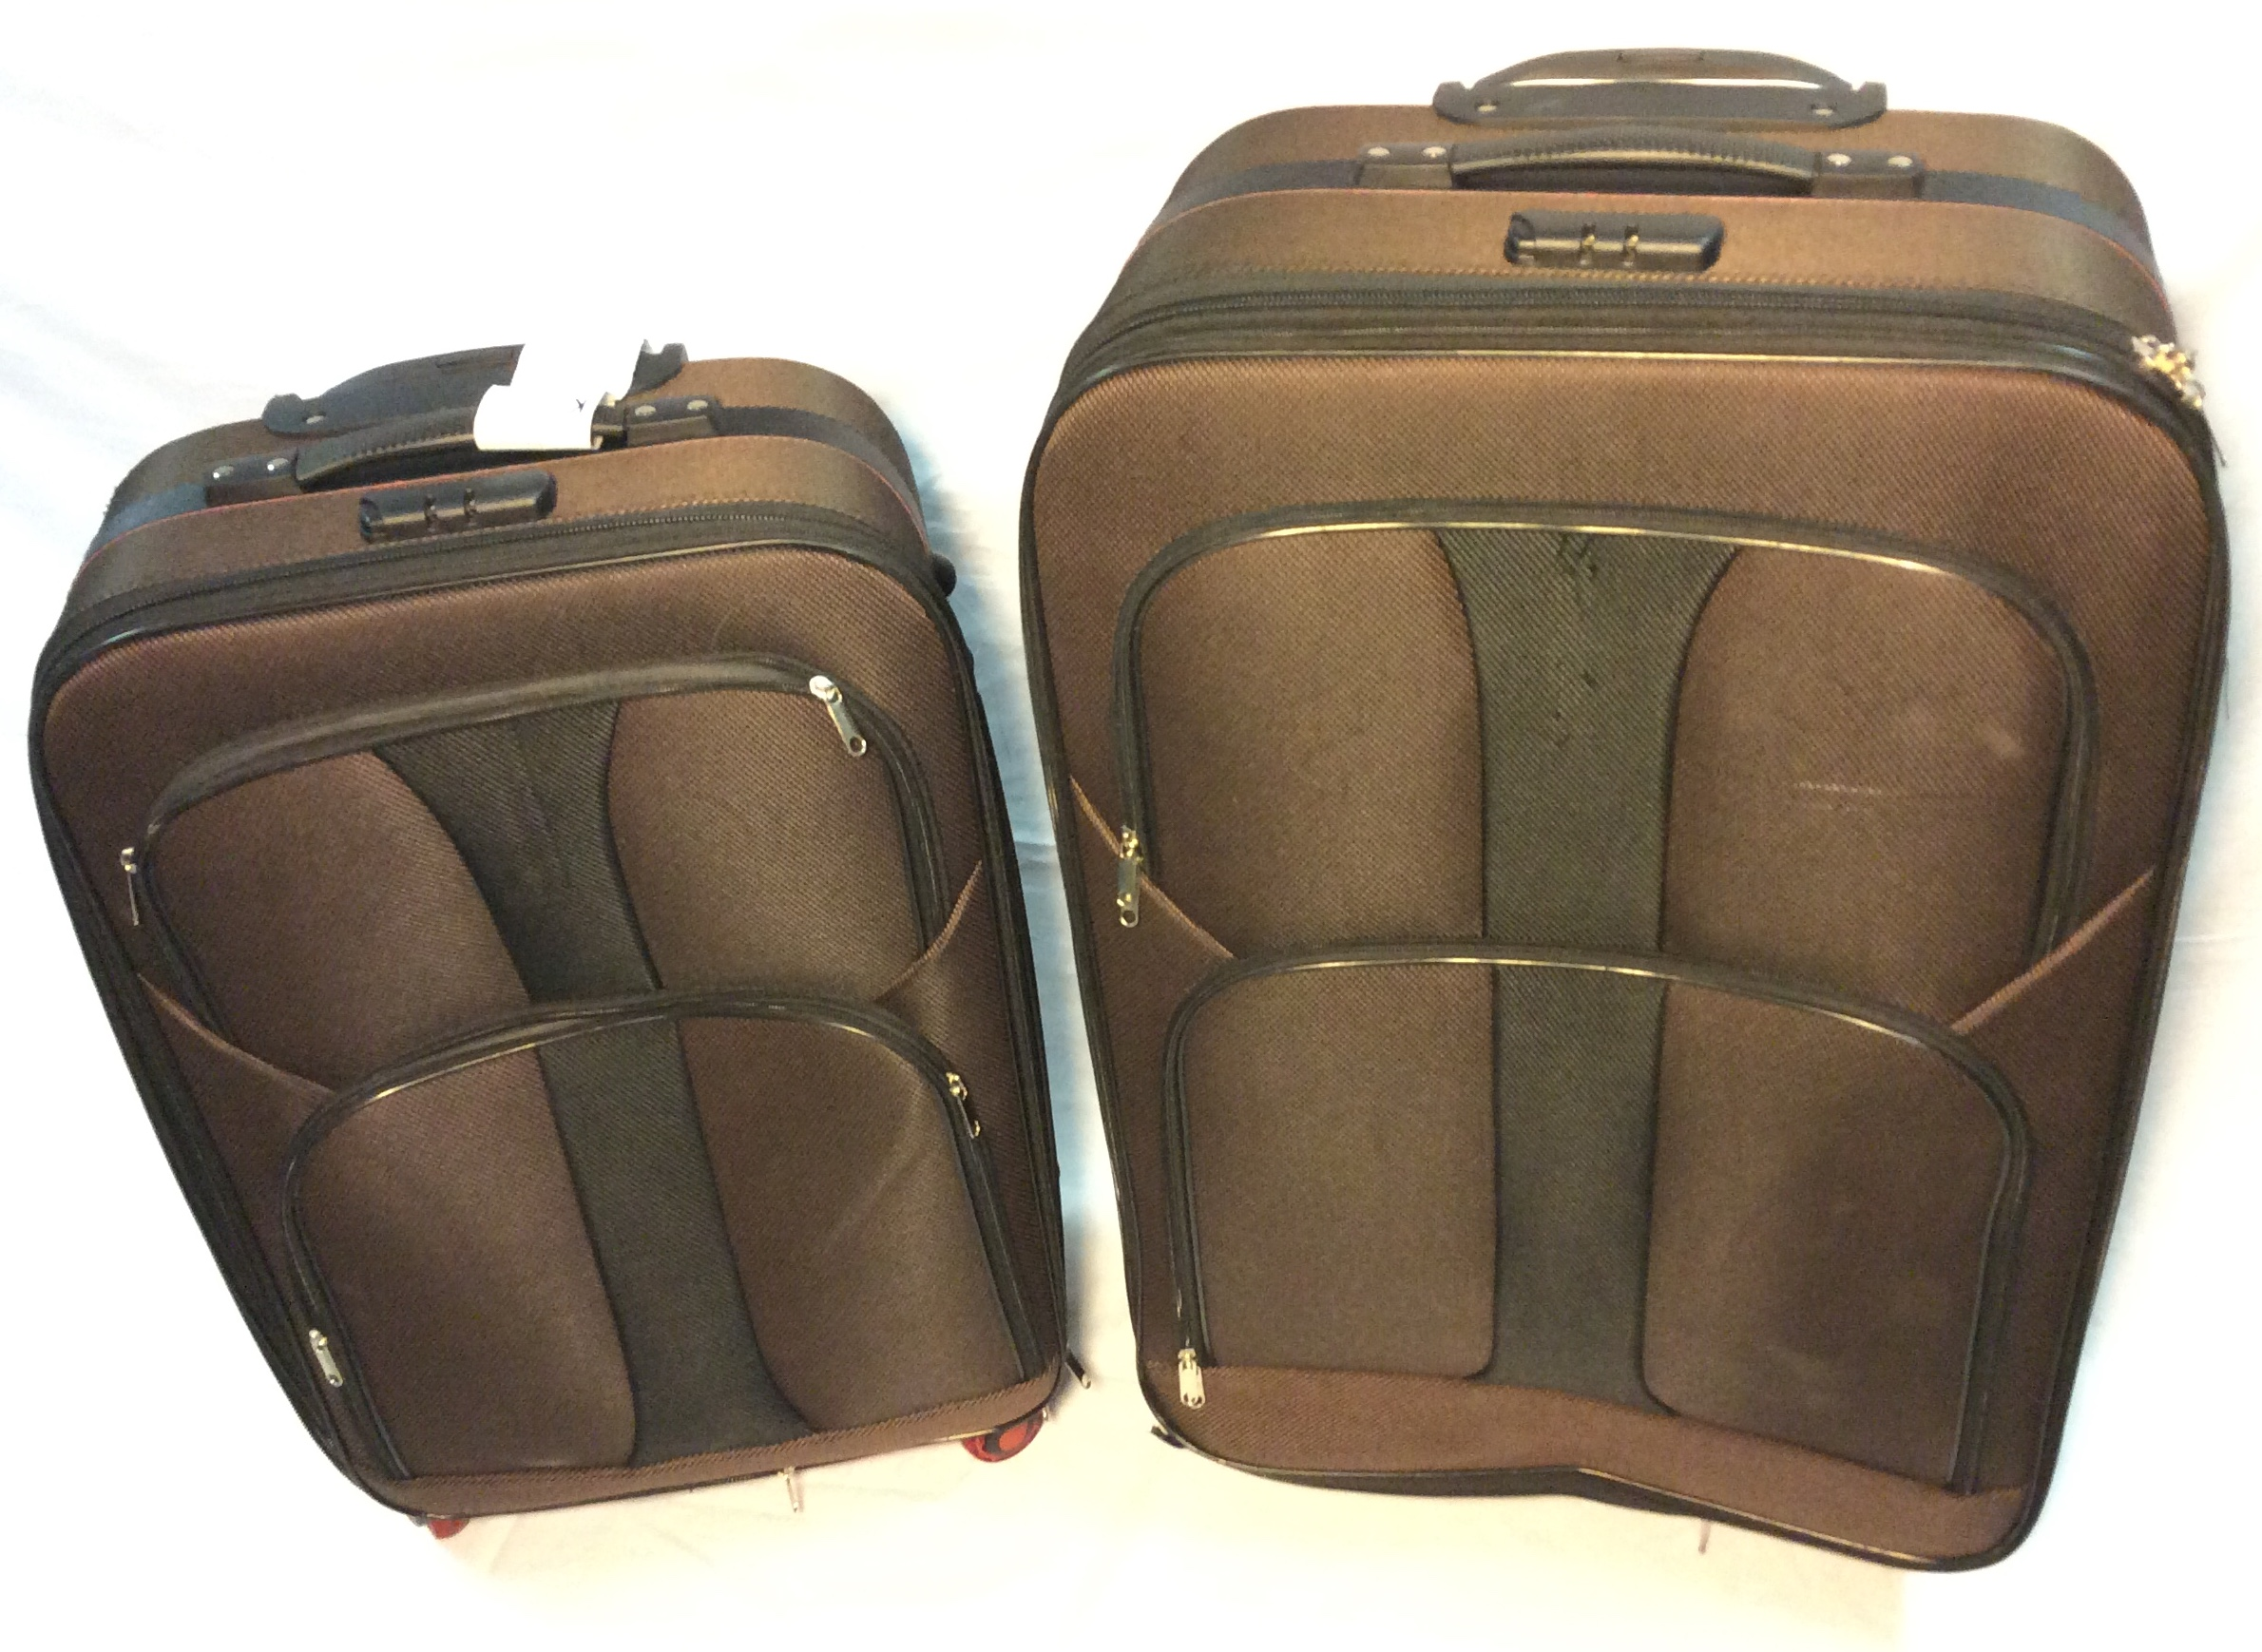 Brown and Black, 2 pc 4-wheeled suit